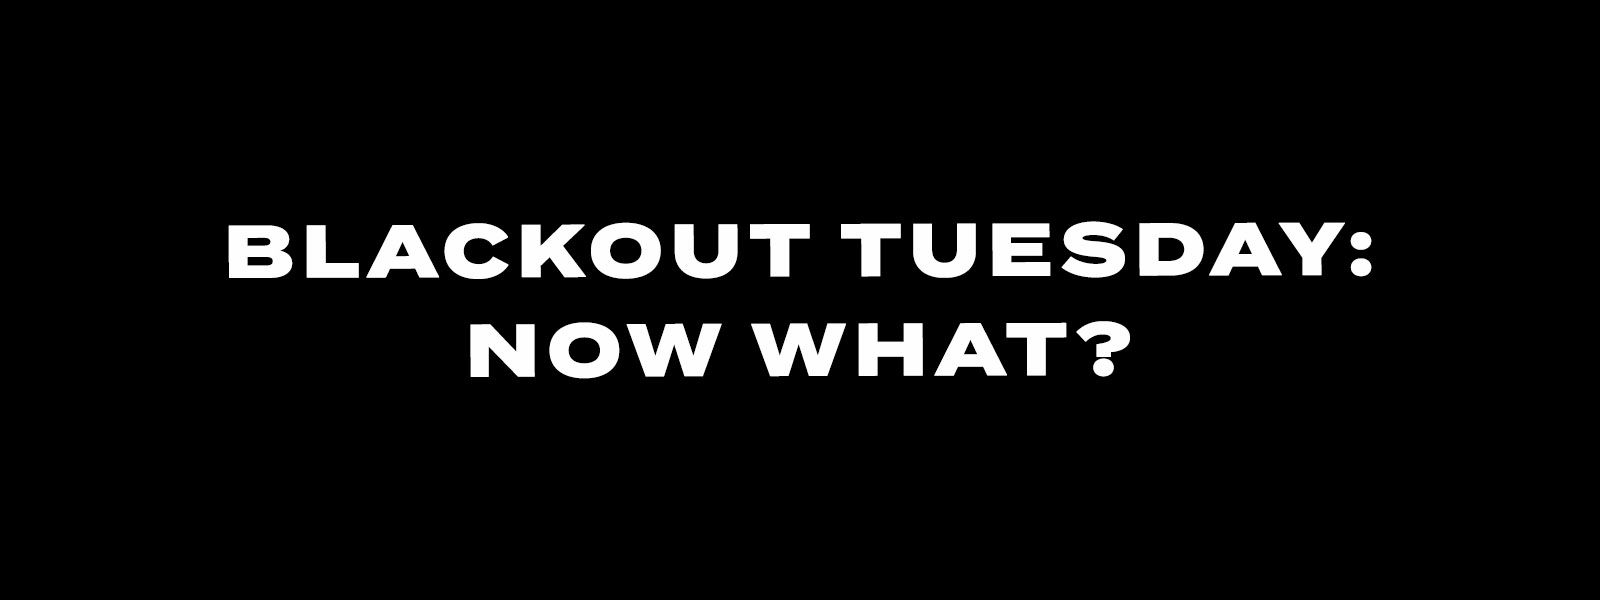 Blackout Tuesday: Now What?